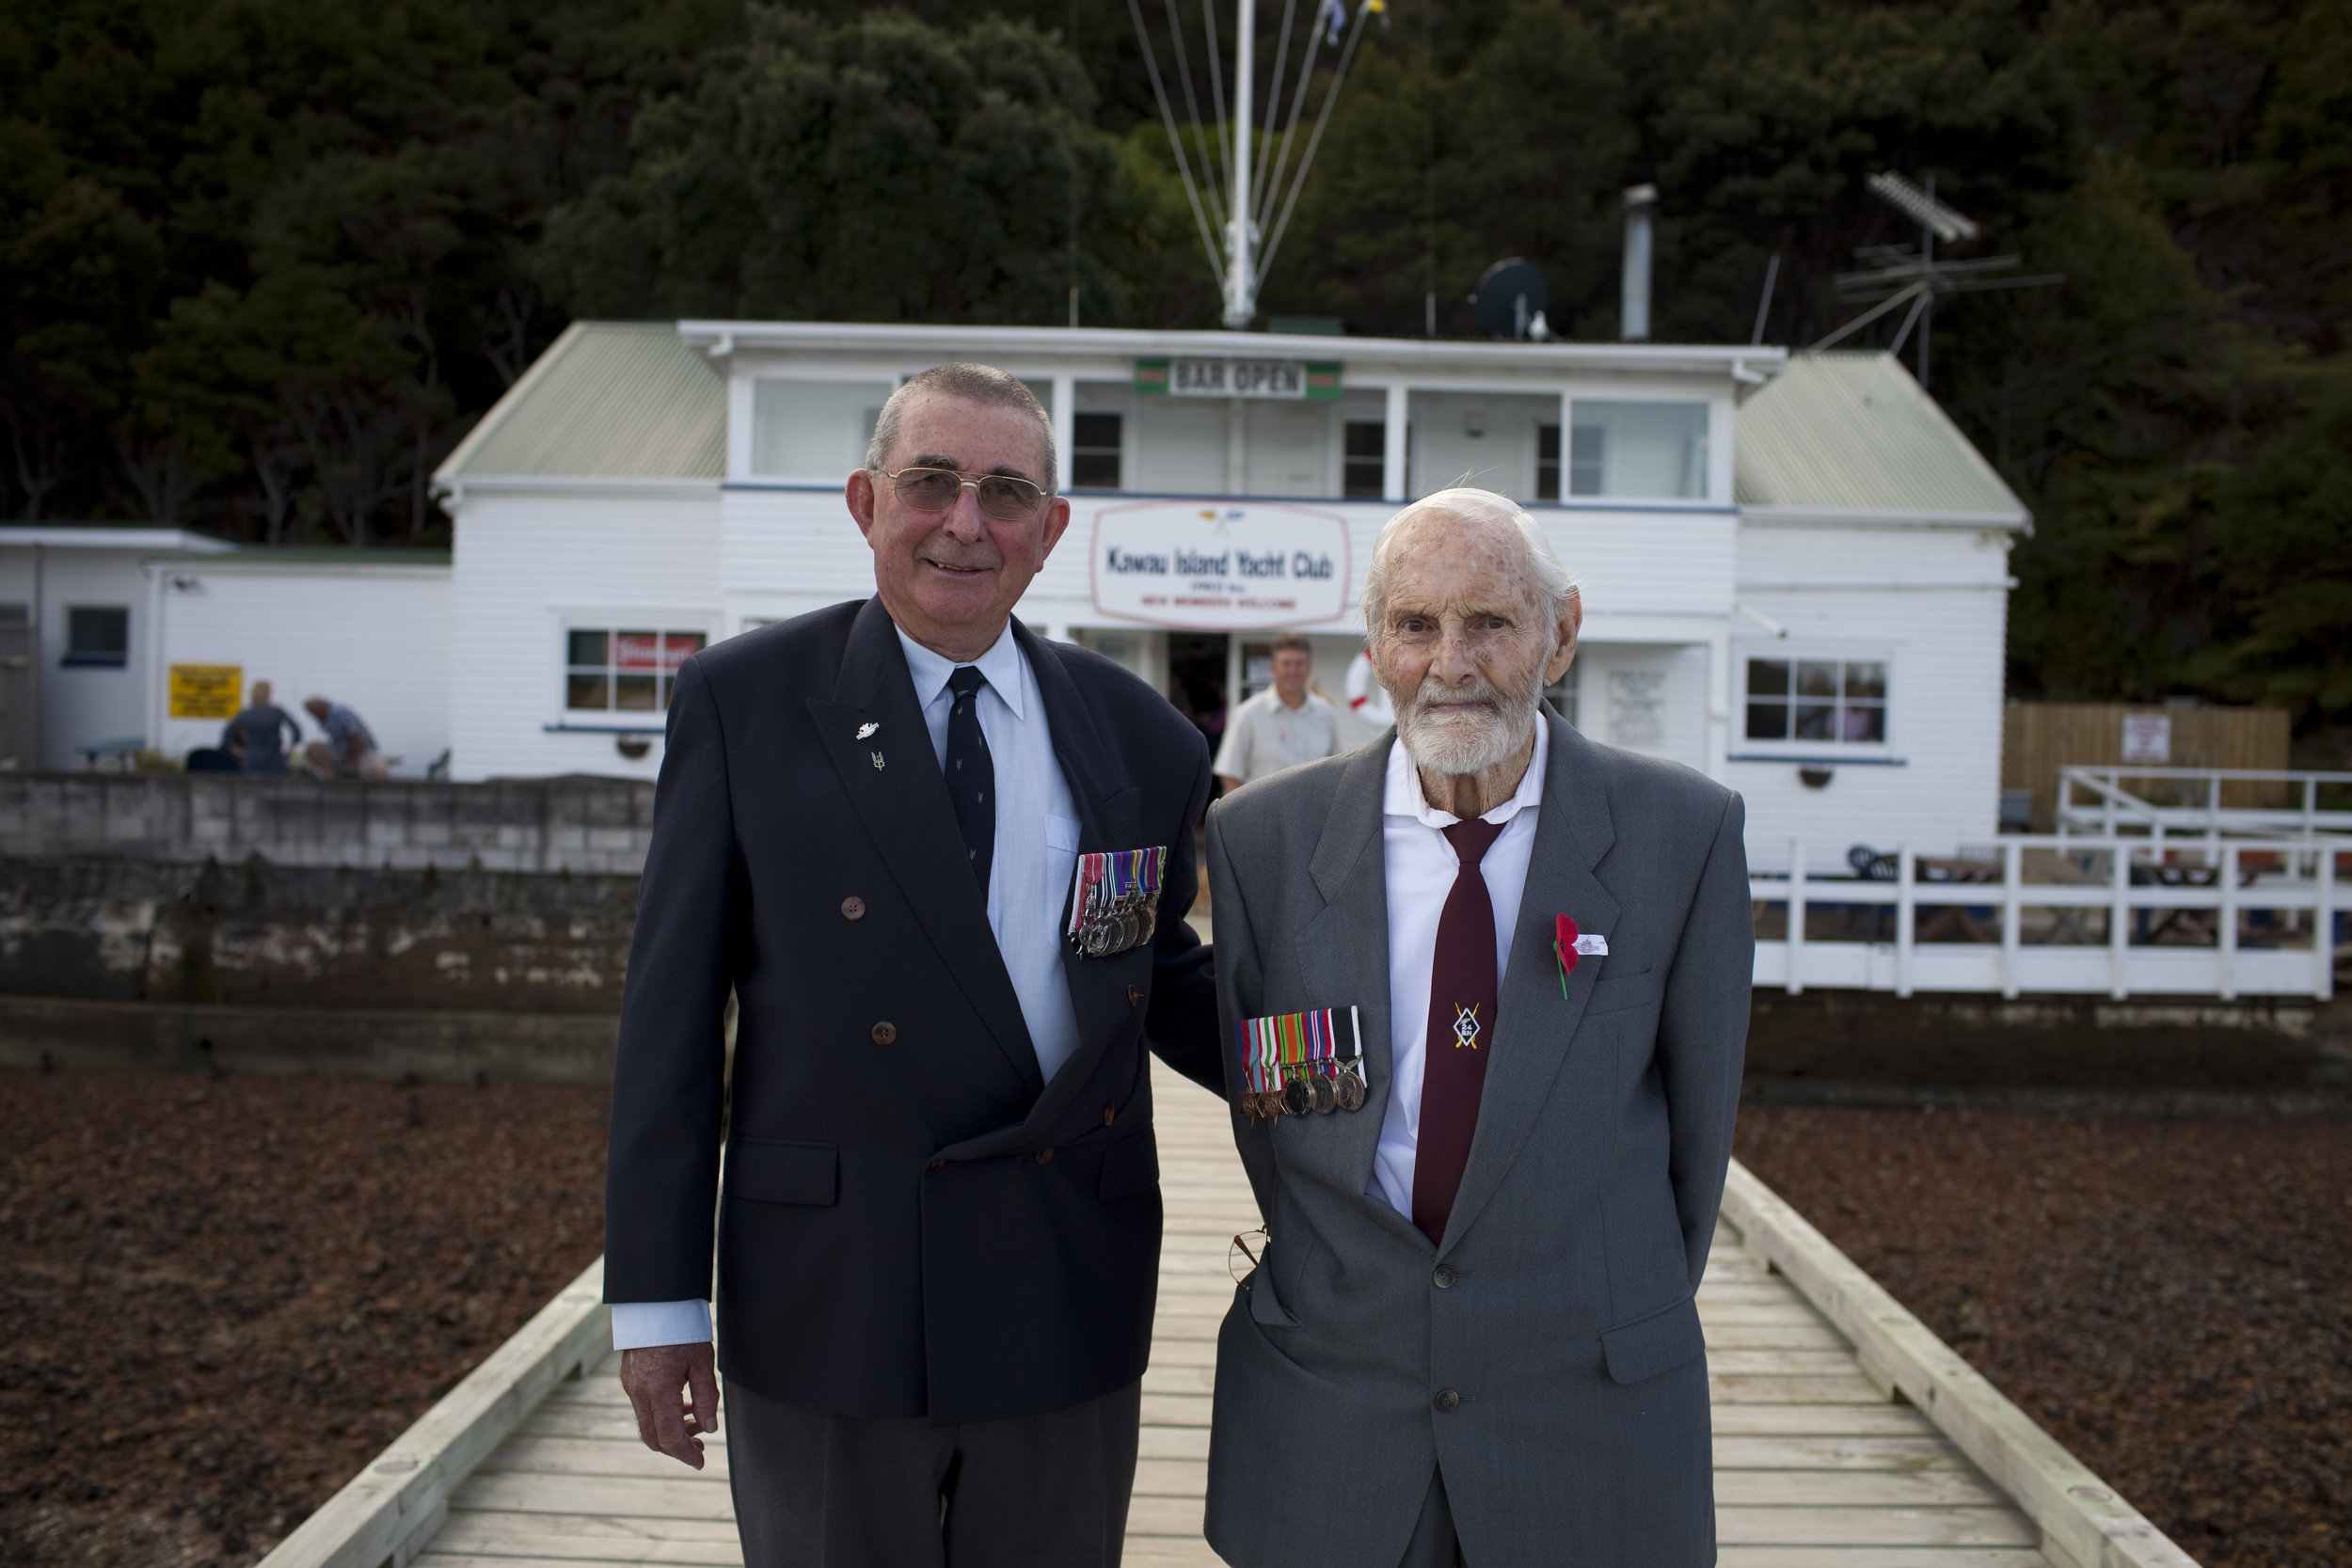 Honoured servicemen outside the Kawau Yatch Club